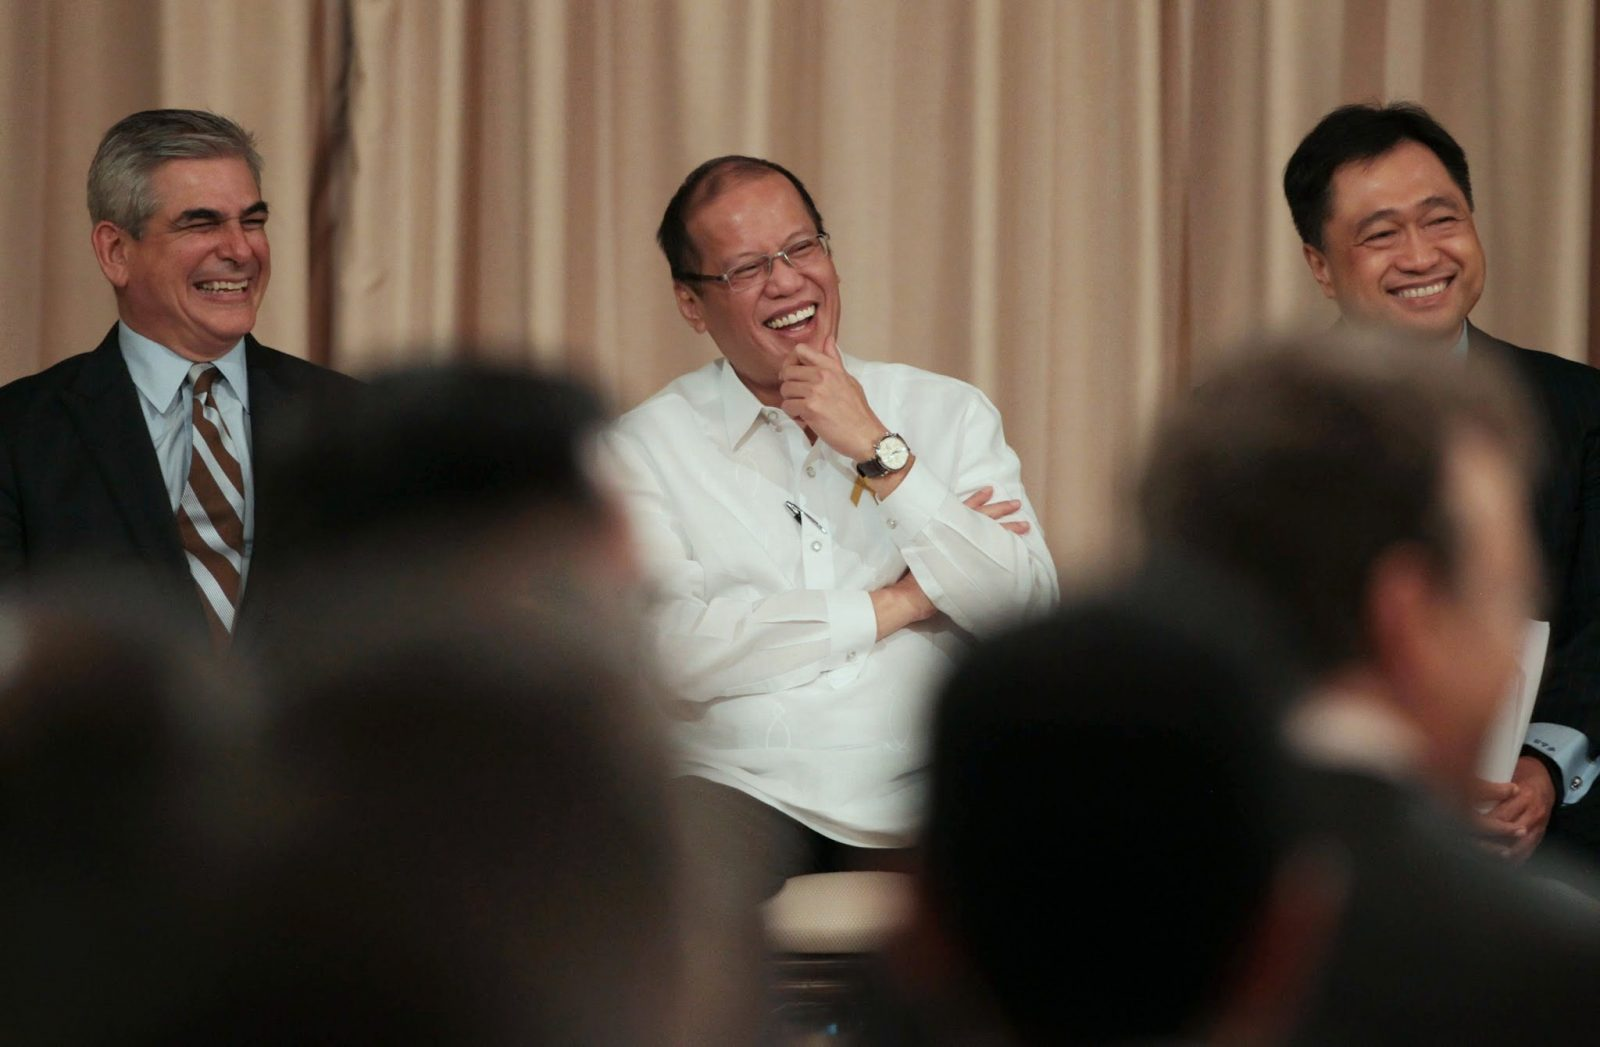 President Benigno S. Aquino III shares a light moment with Ayala Corporation chairman and chief executive officer Jaime Augusto Zobel de Ayala and Finance Secretary Cesar Purisima during the courtesy call of the ASEAN Business Club at the Reception Hall of the Malacañan Palace on Wednesday (May 21, 2014). The ASEAN Business Club is an association of the chief executives of ASEAN's most important business enterprises, who are committed to the advancement of the ASEAN agenda. (Photo by Benhur Arcayan / Malacañang Photo Bureau)